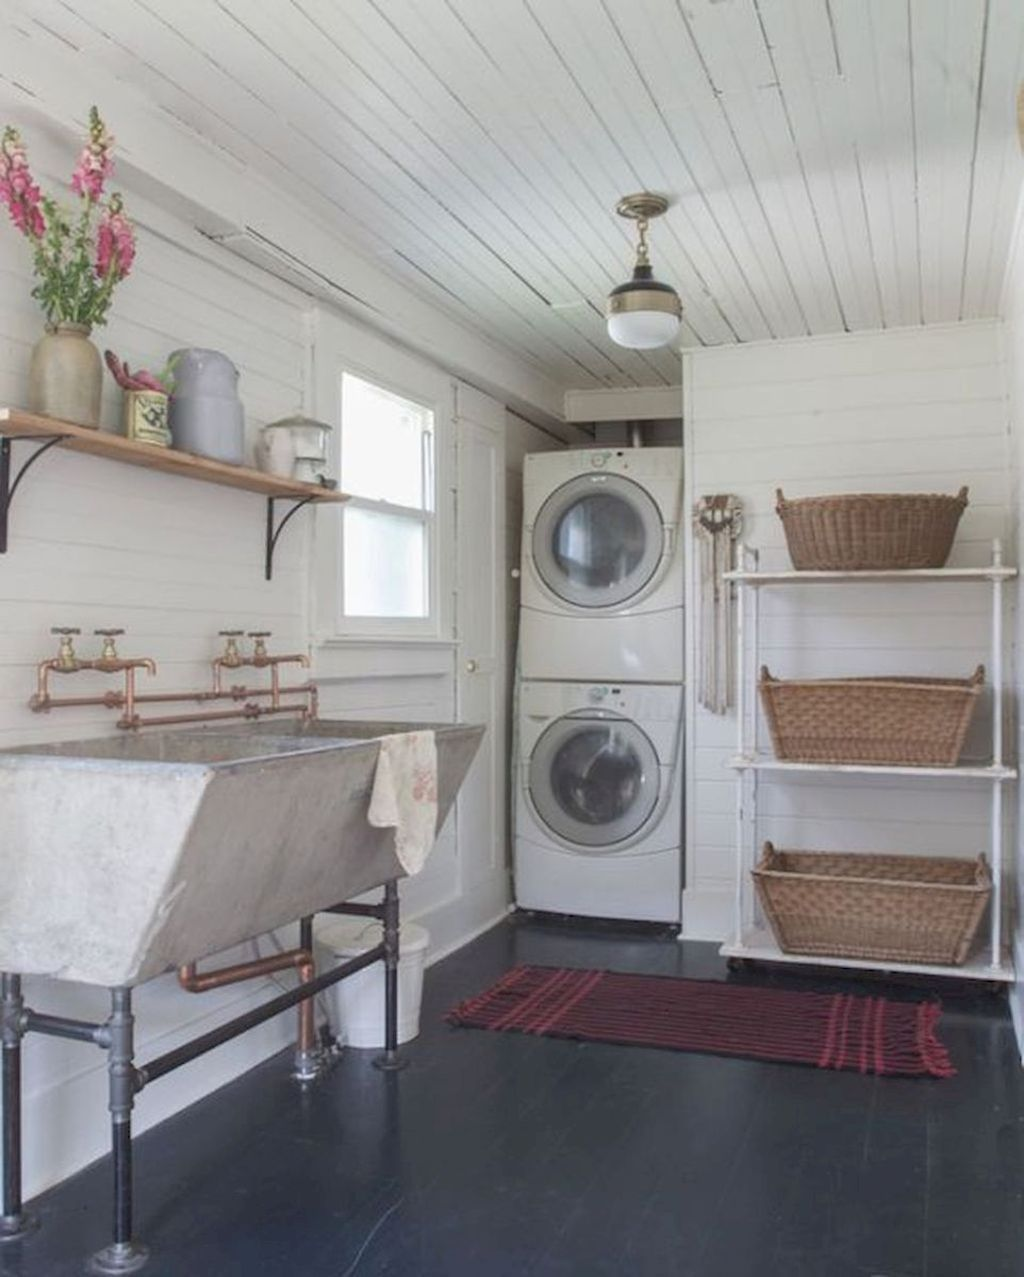 44 modern farmhouse laundry room decor ideas with images on extraordinary small laundry room design and decorating ideas modest laundry space id=95420